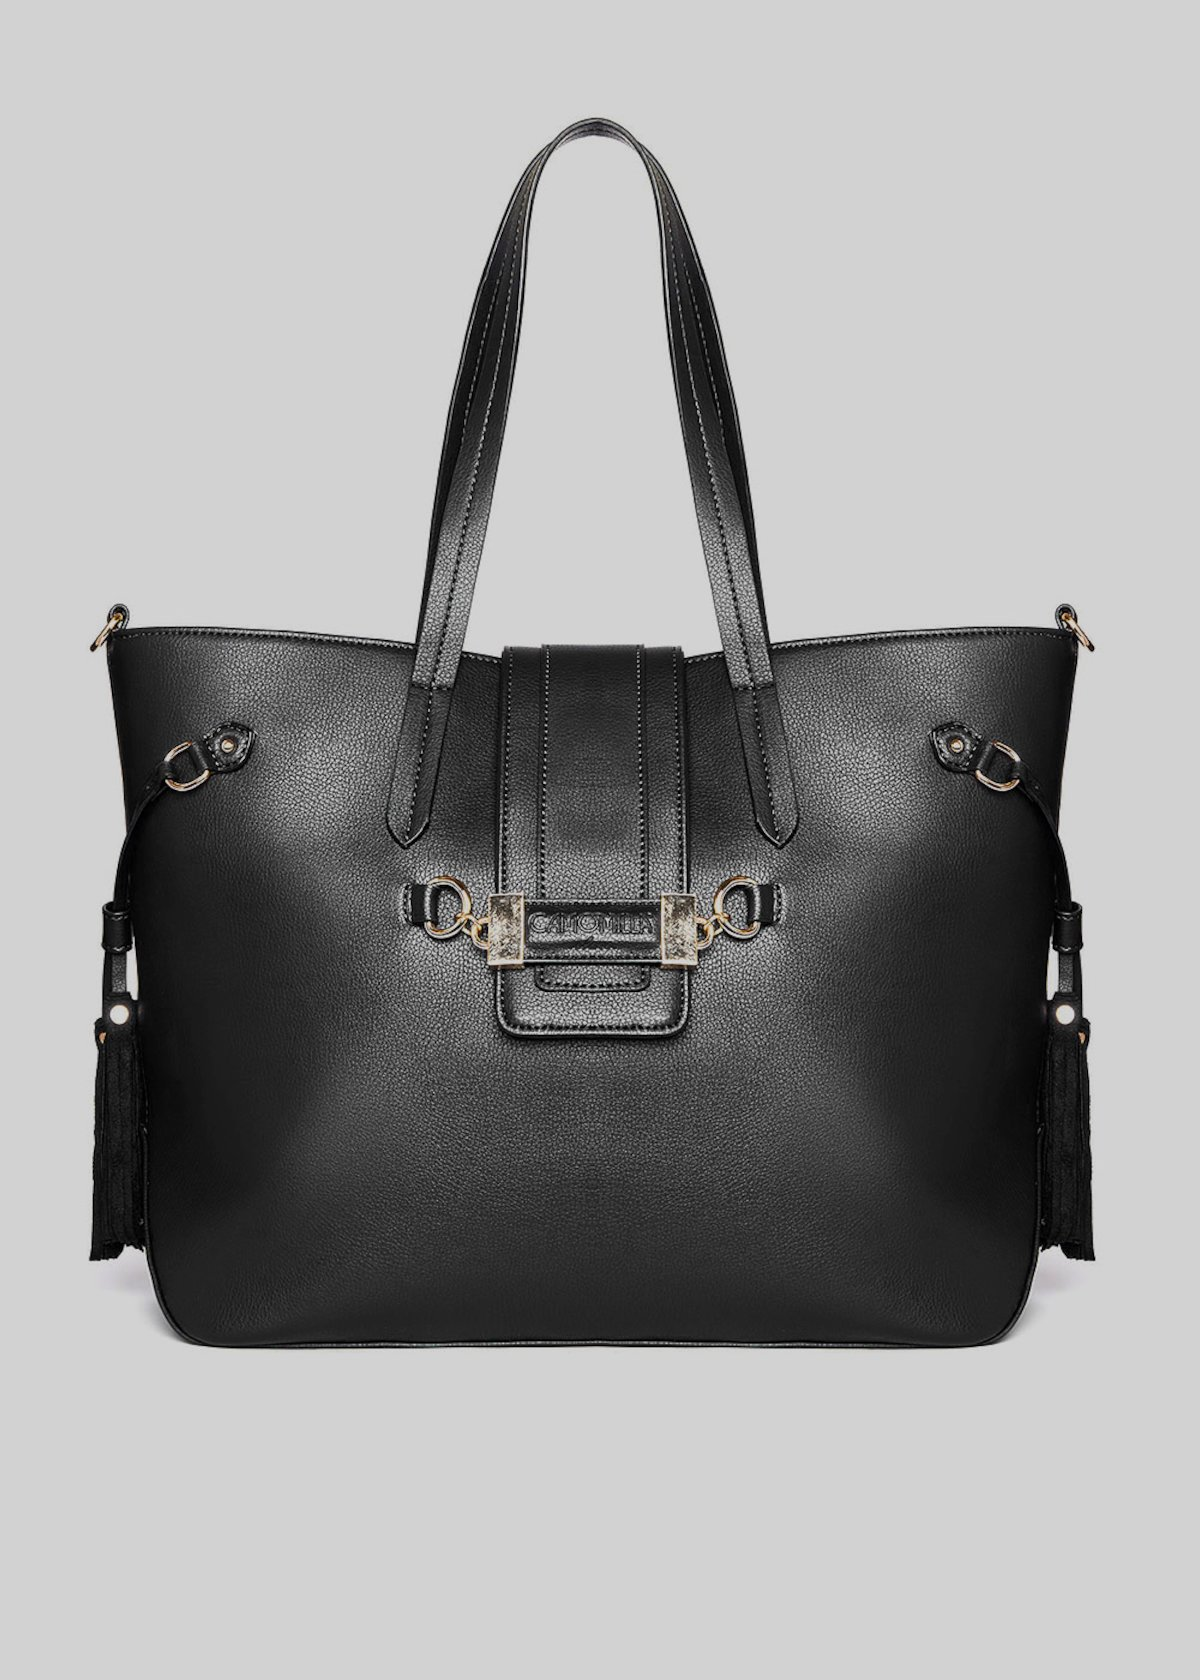 Brady tote bag in faux leather with removable shoulder strap